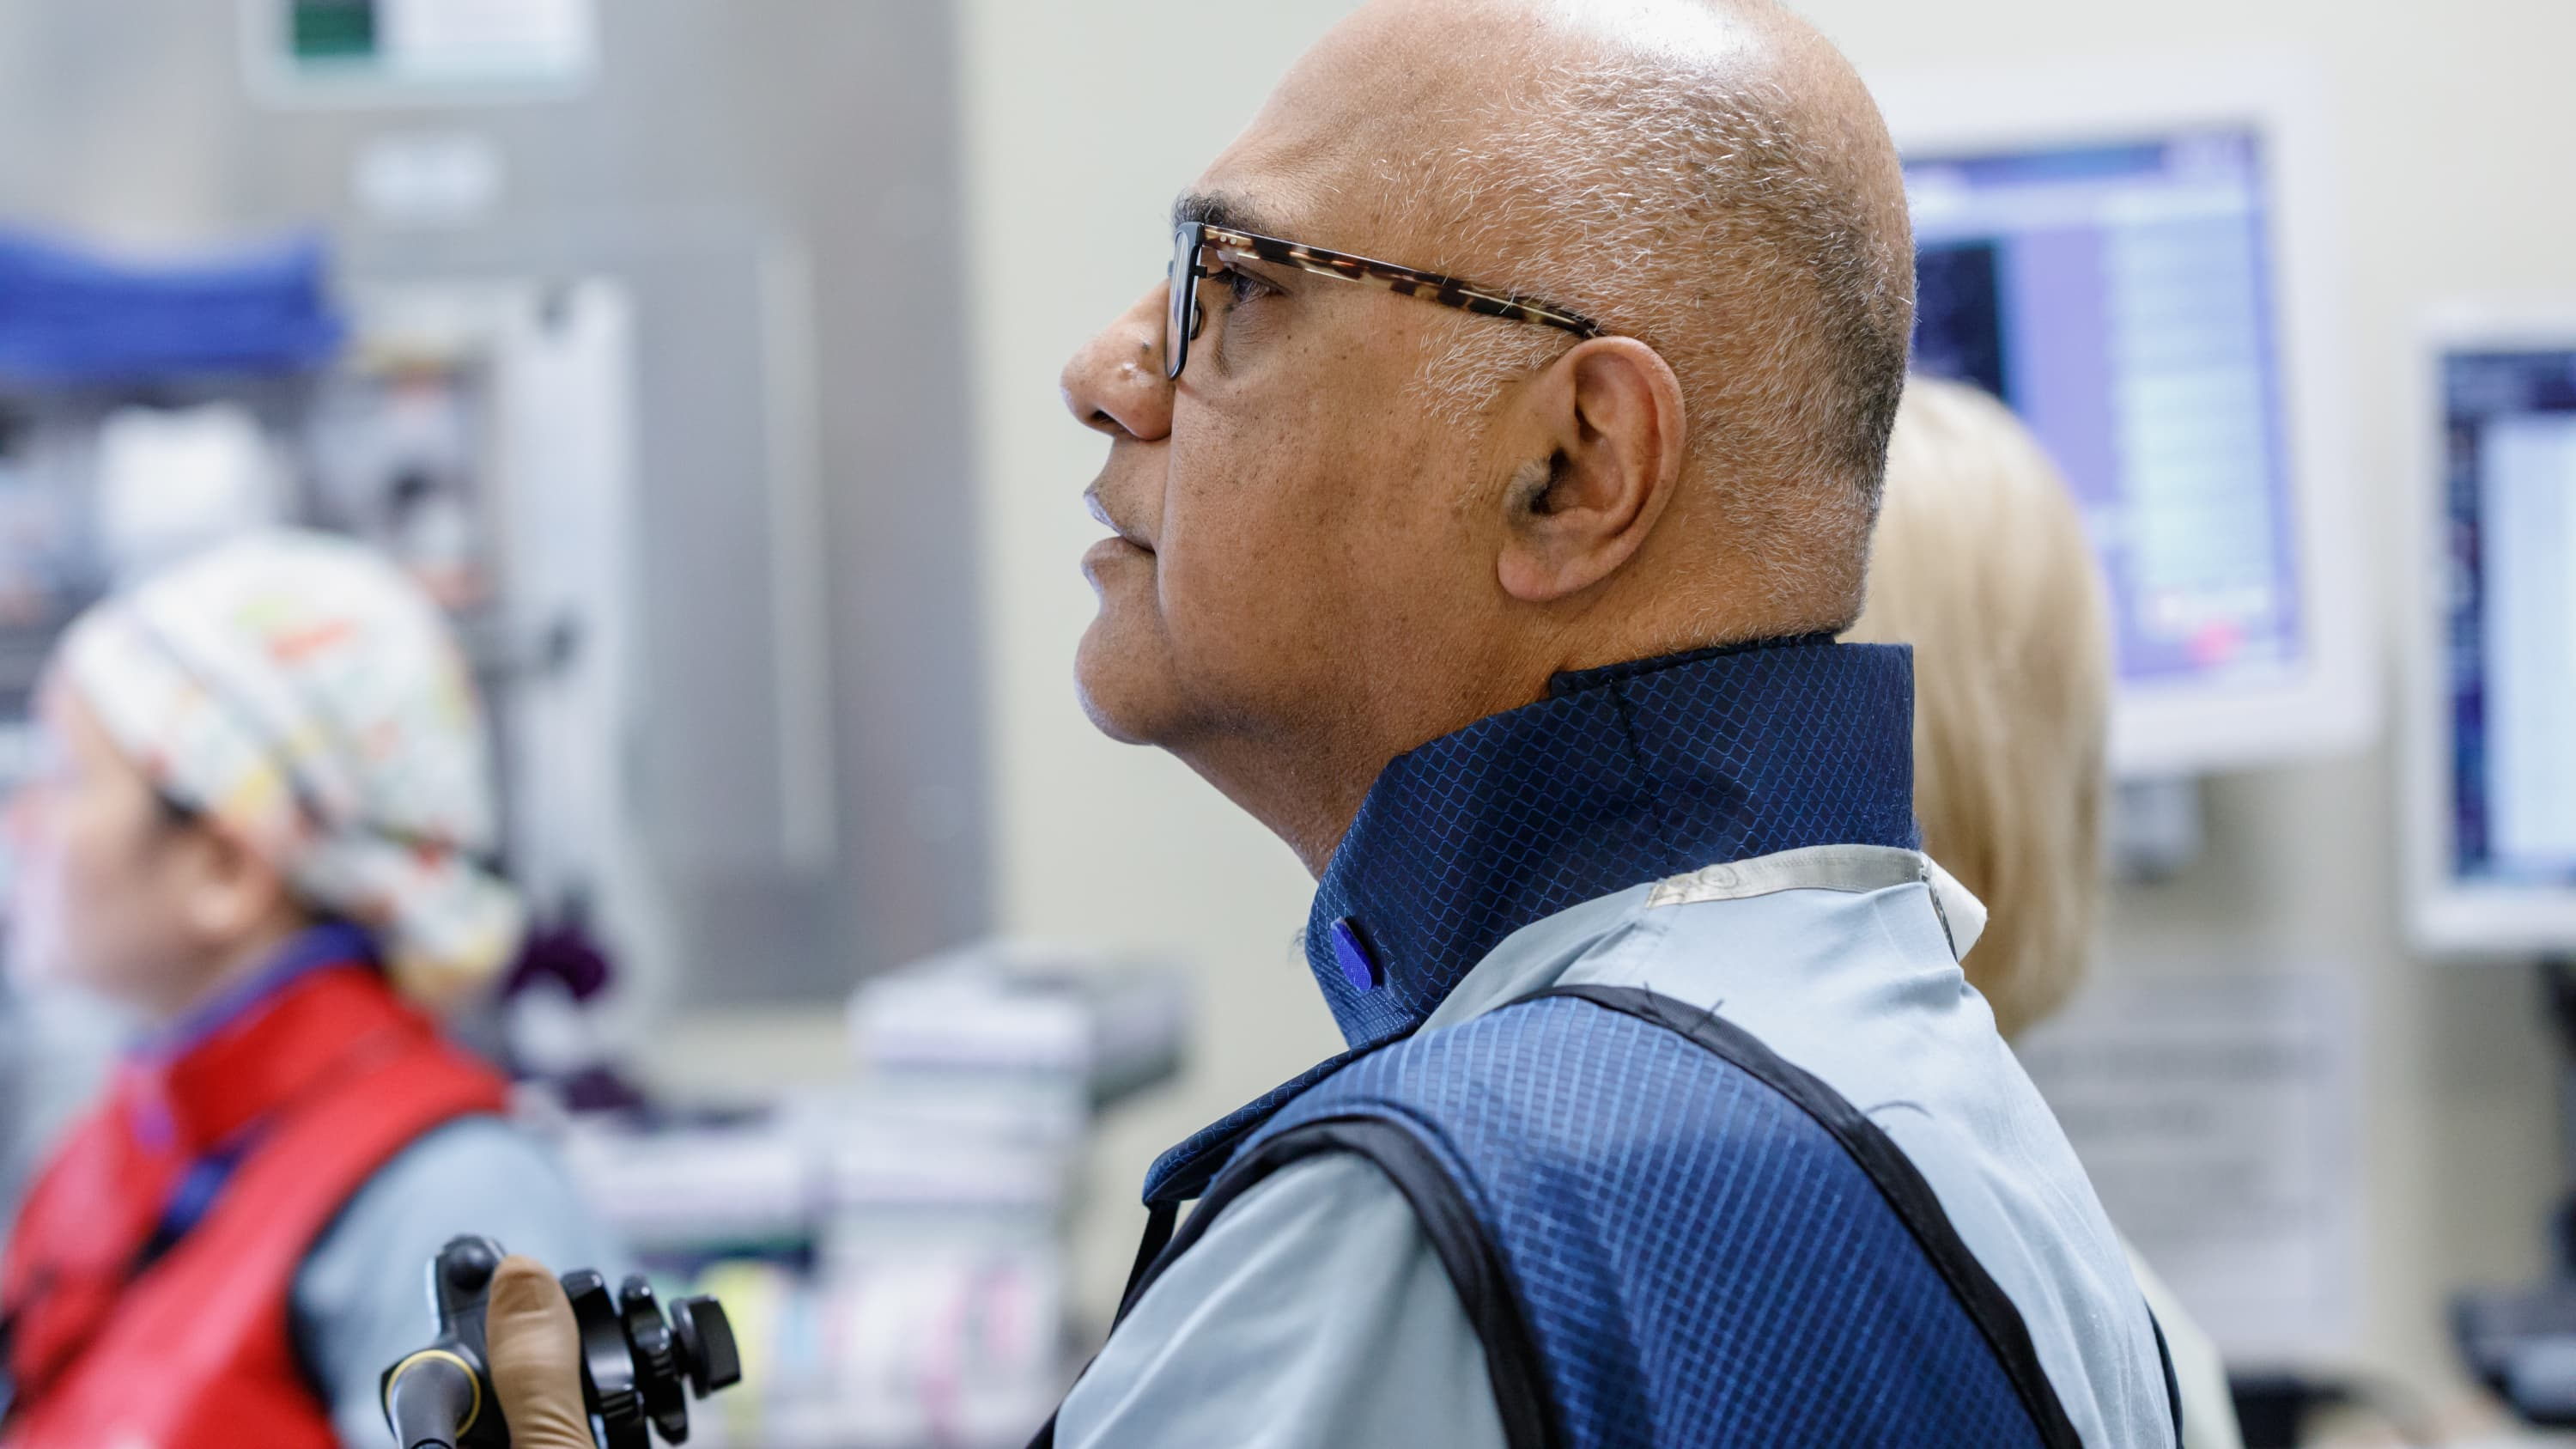 A doctor with glasses concentrates while conducting advanced diagnostic procedures for digestive diseases.